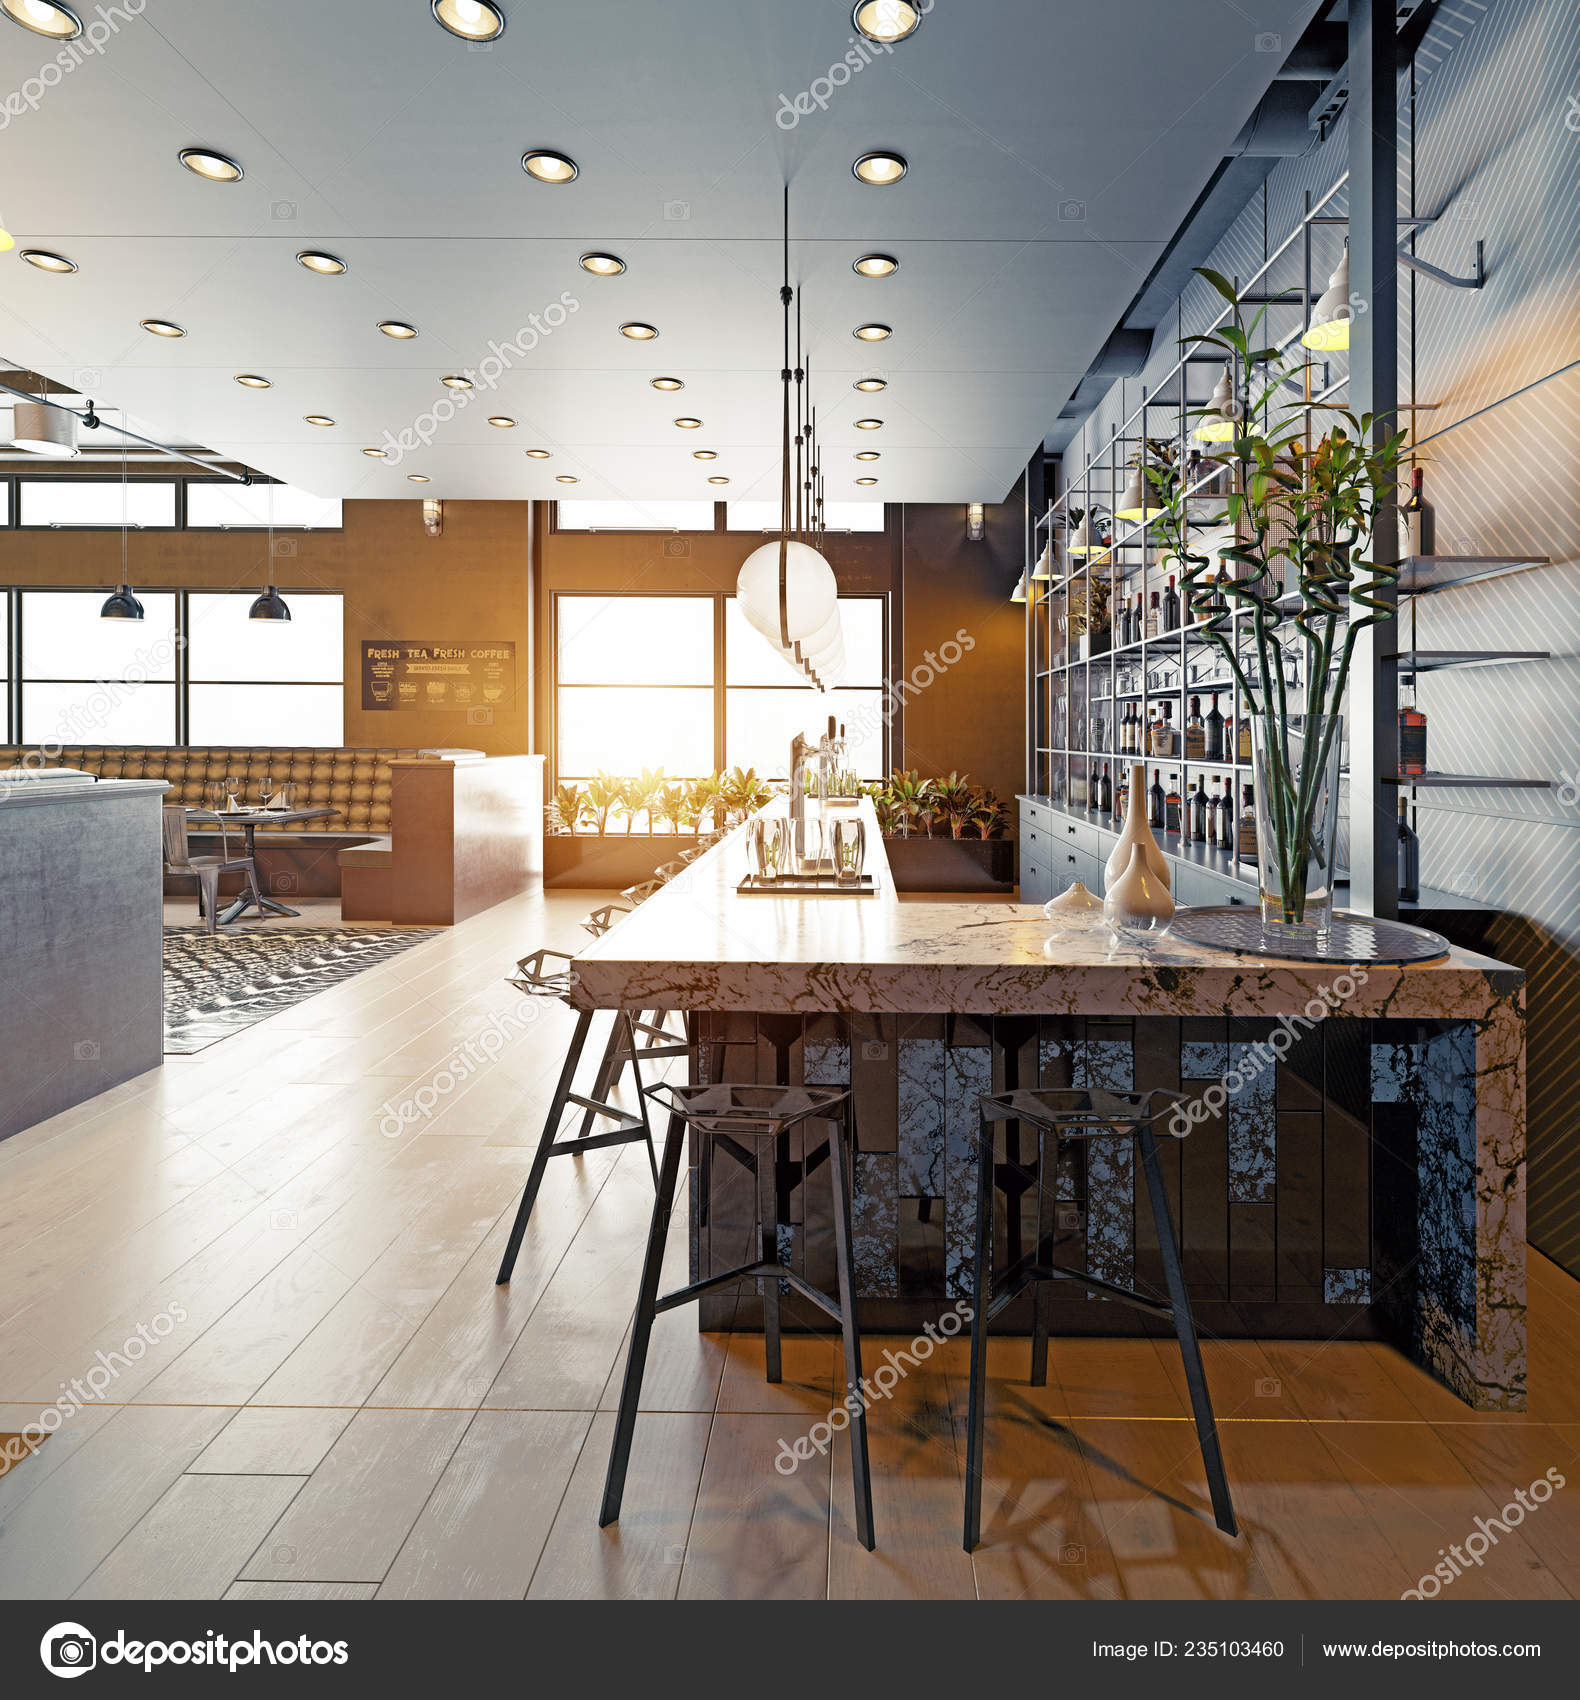 Modern Restaurant Interior Design Rendering Concept Stock Photo C Vicnt2815 235103460